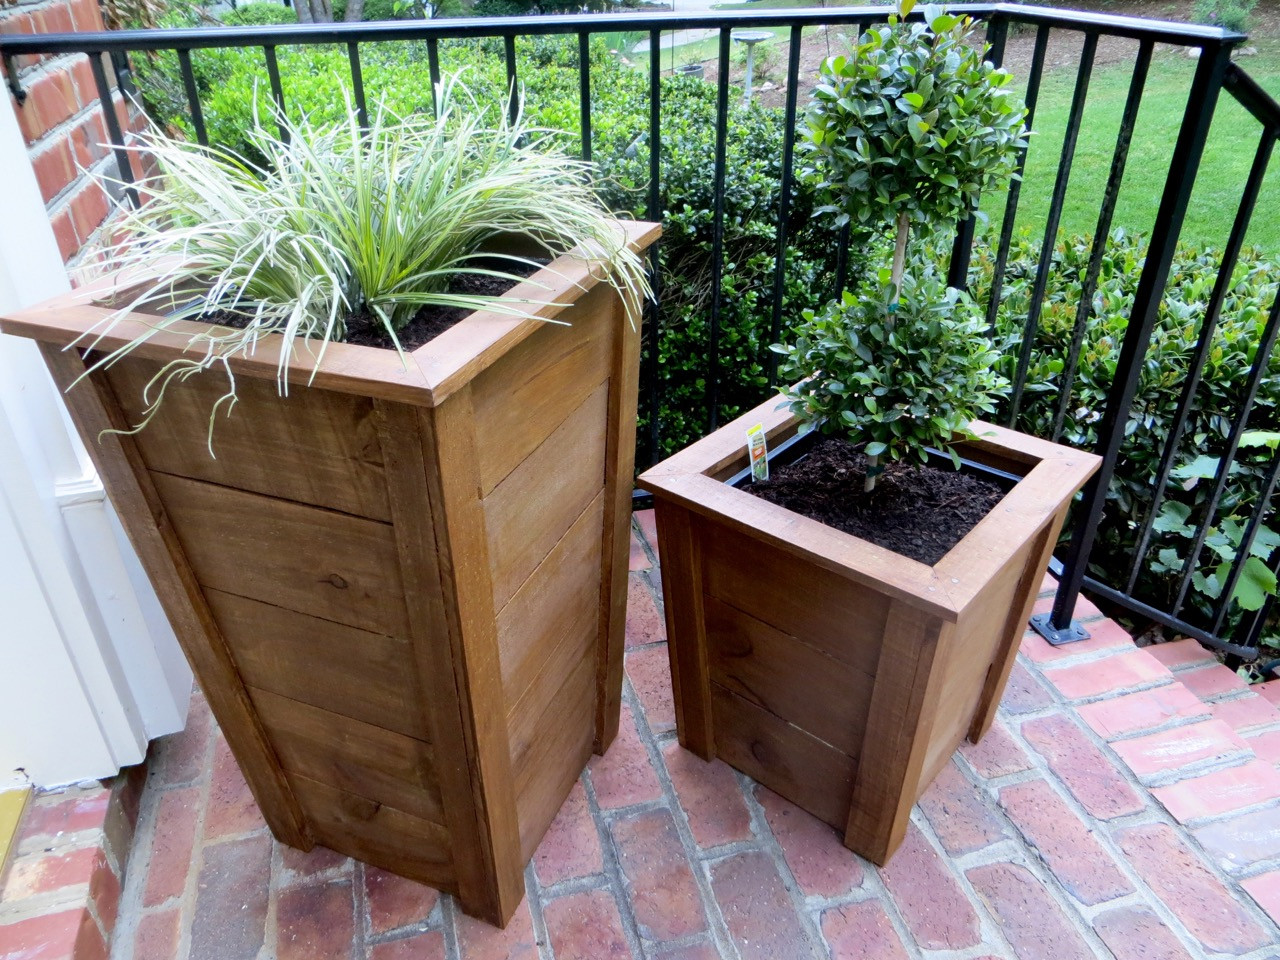 Best ideas about DIY Wood Planter . Save or Pin The Project Lady DIY Tutorial Decorative Wood Planter Boxes Now.